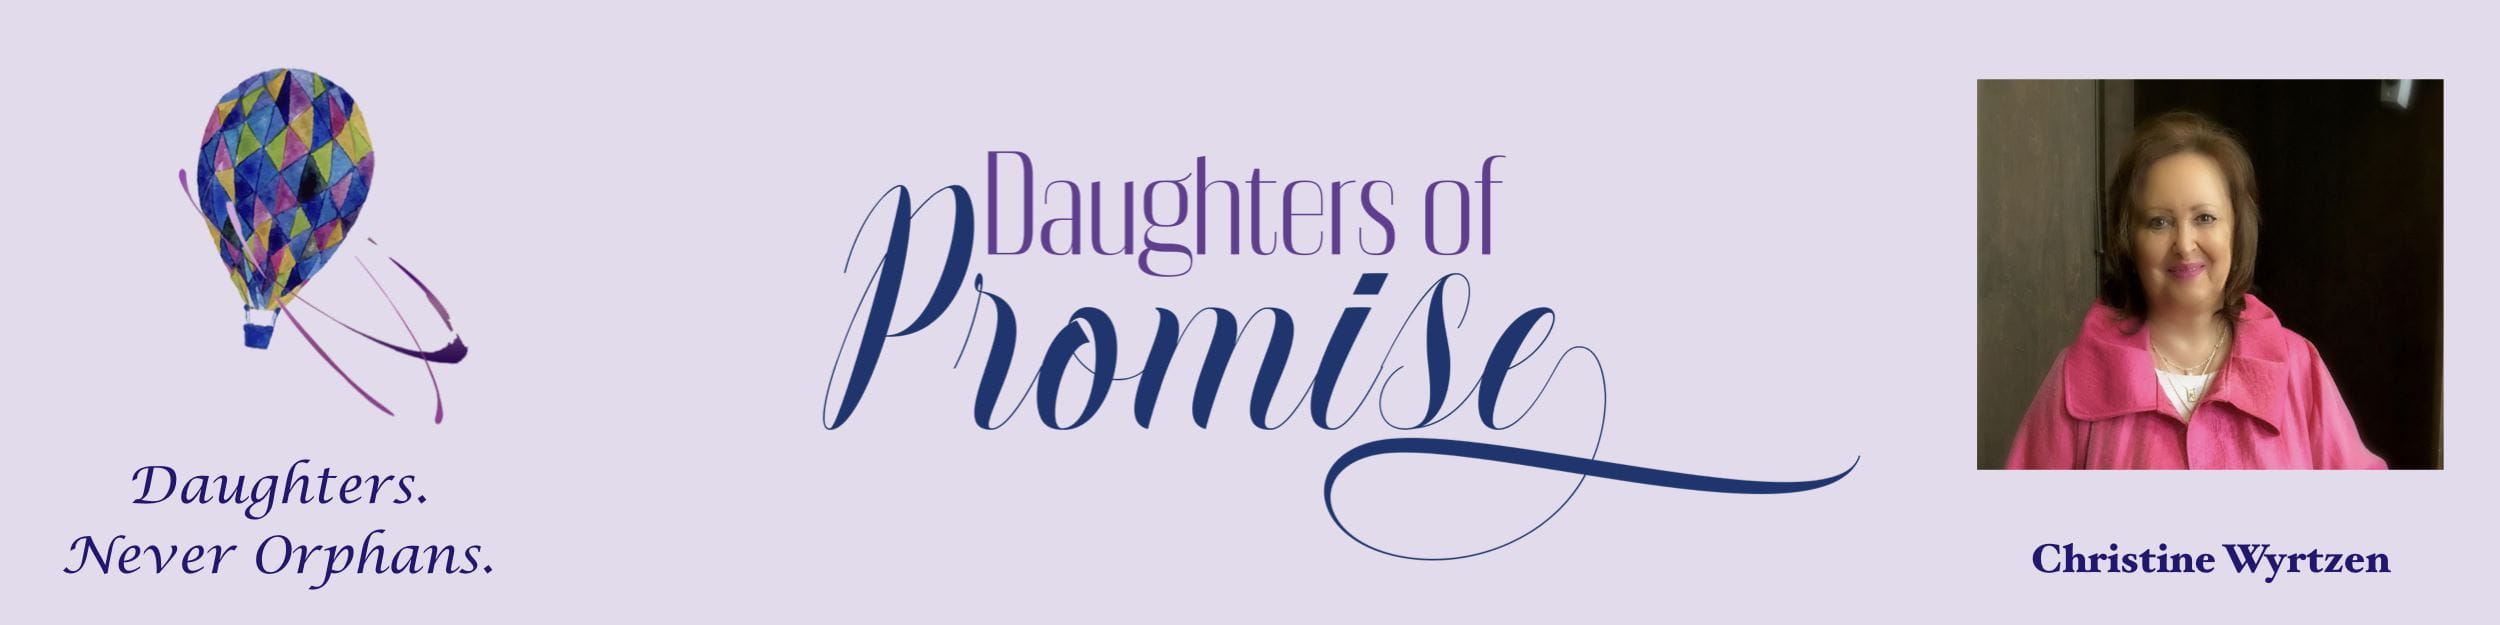 When I Hear God's Voice - Daughters of Promise - September 4 by